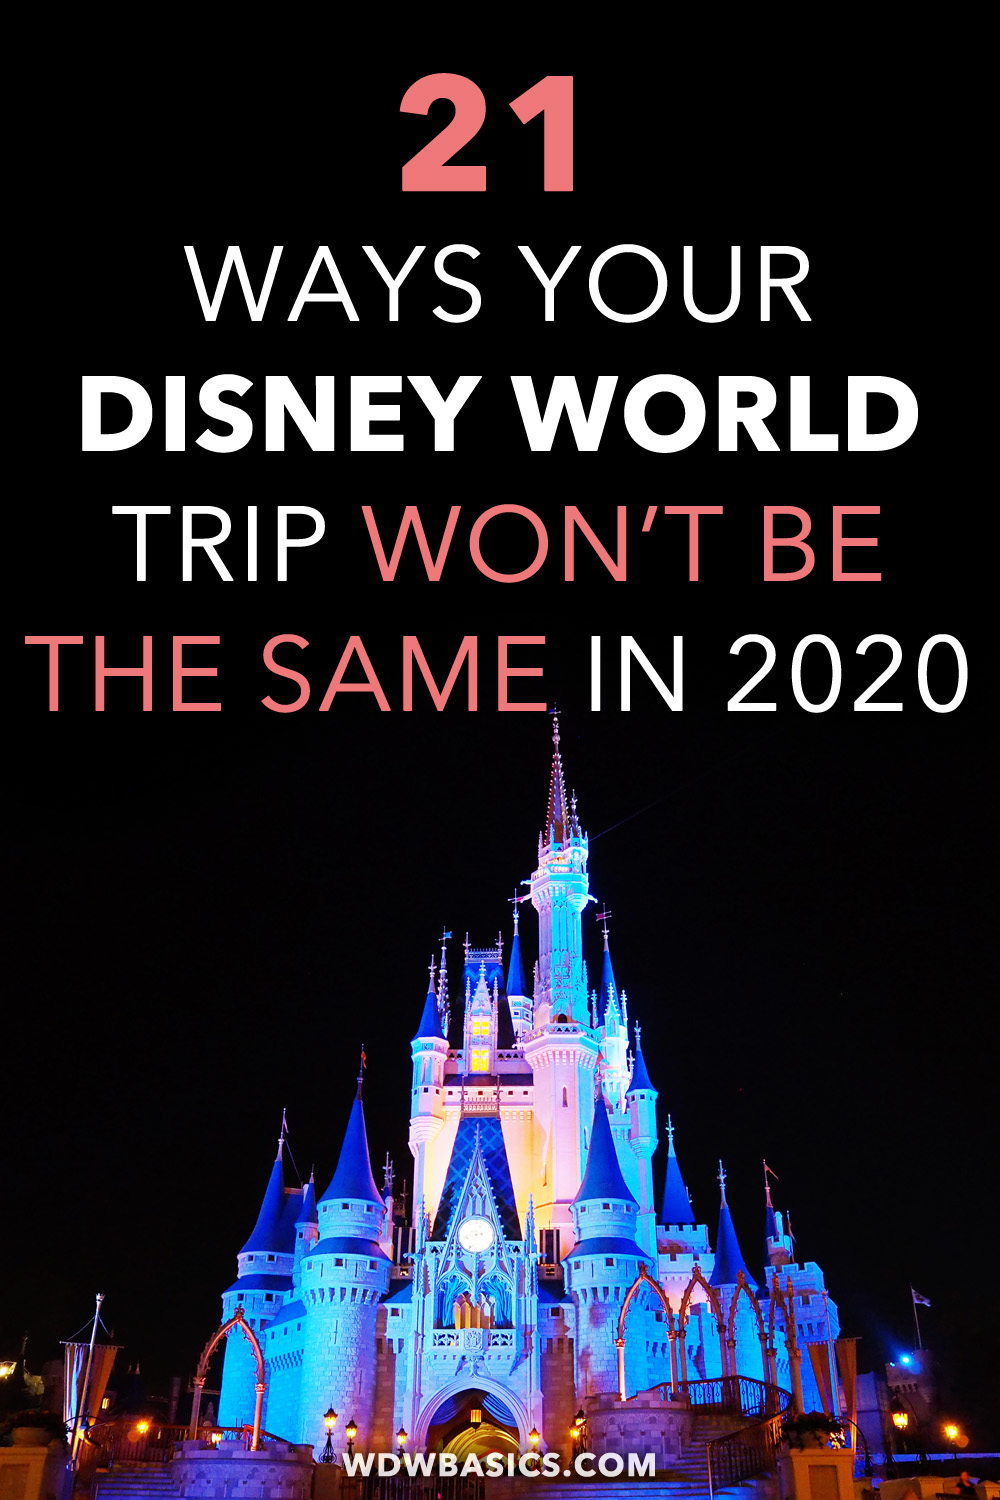 21 ways your Disney World trip won't be the same in 2020